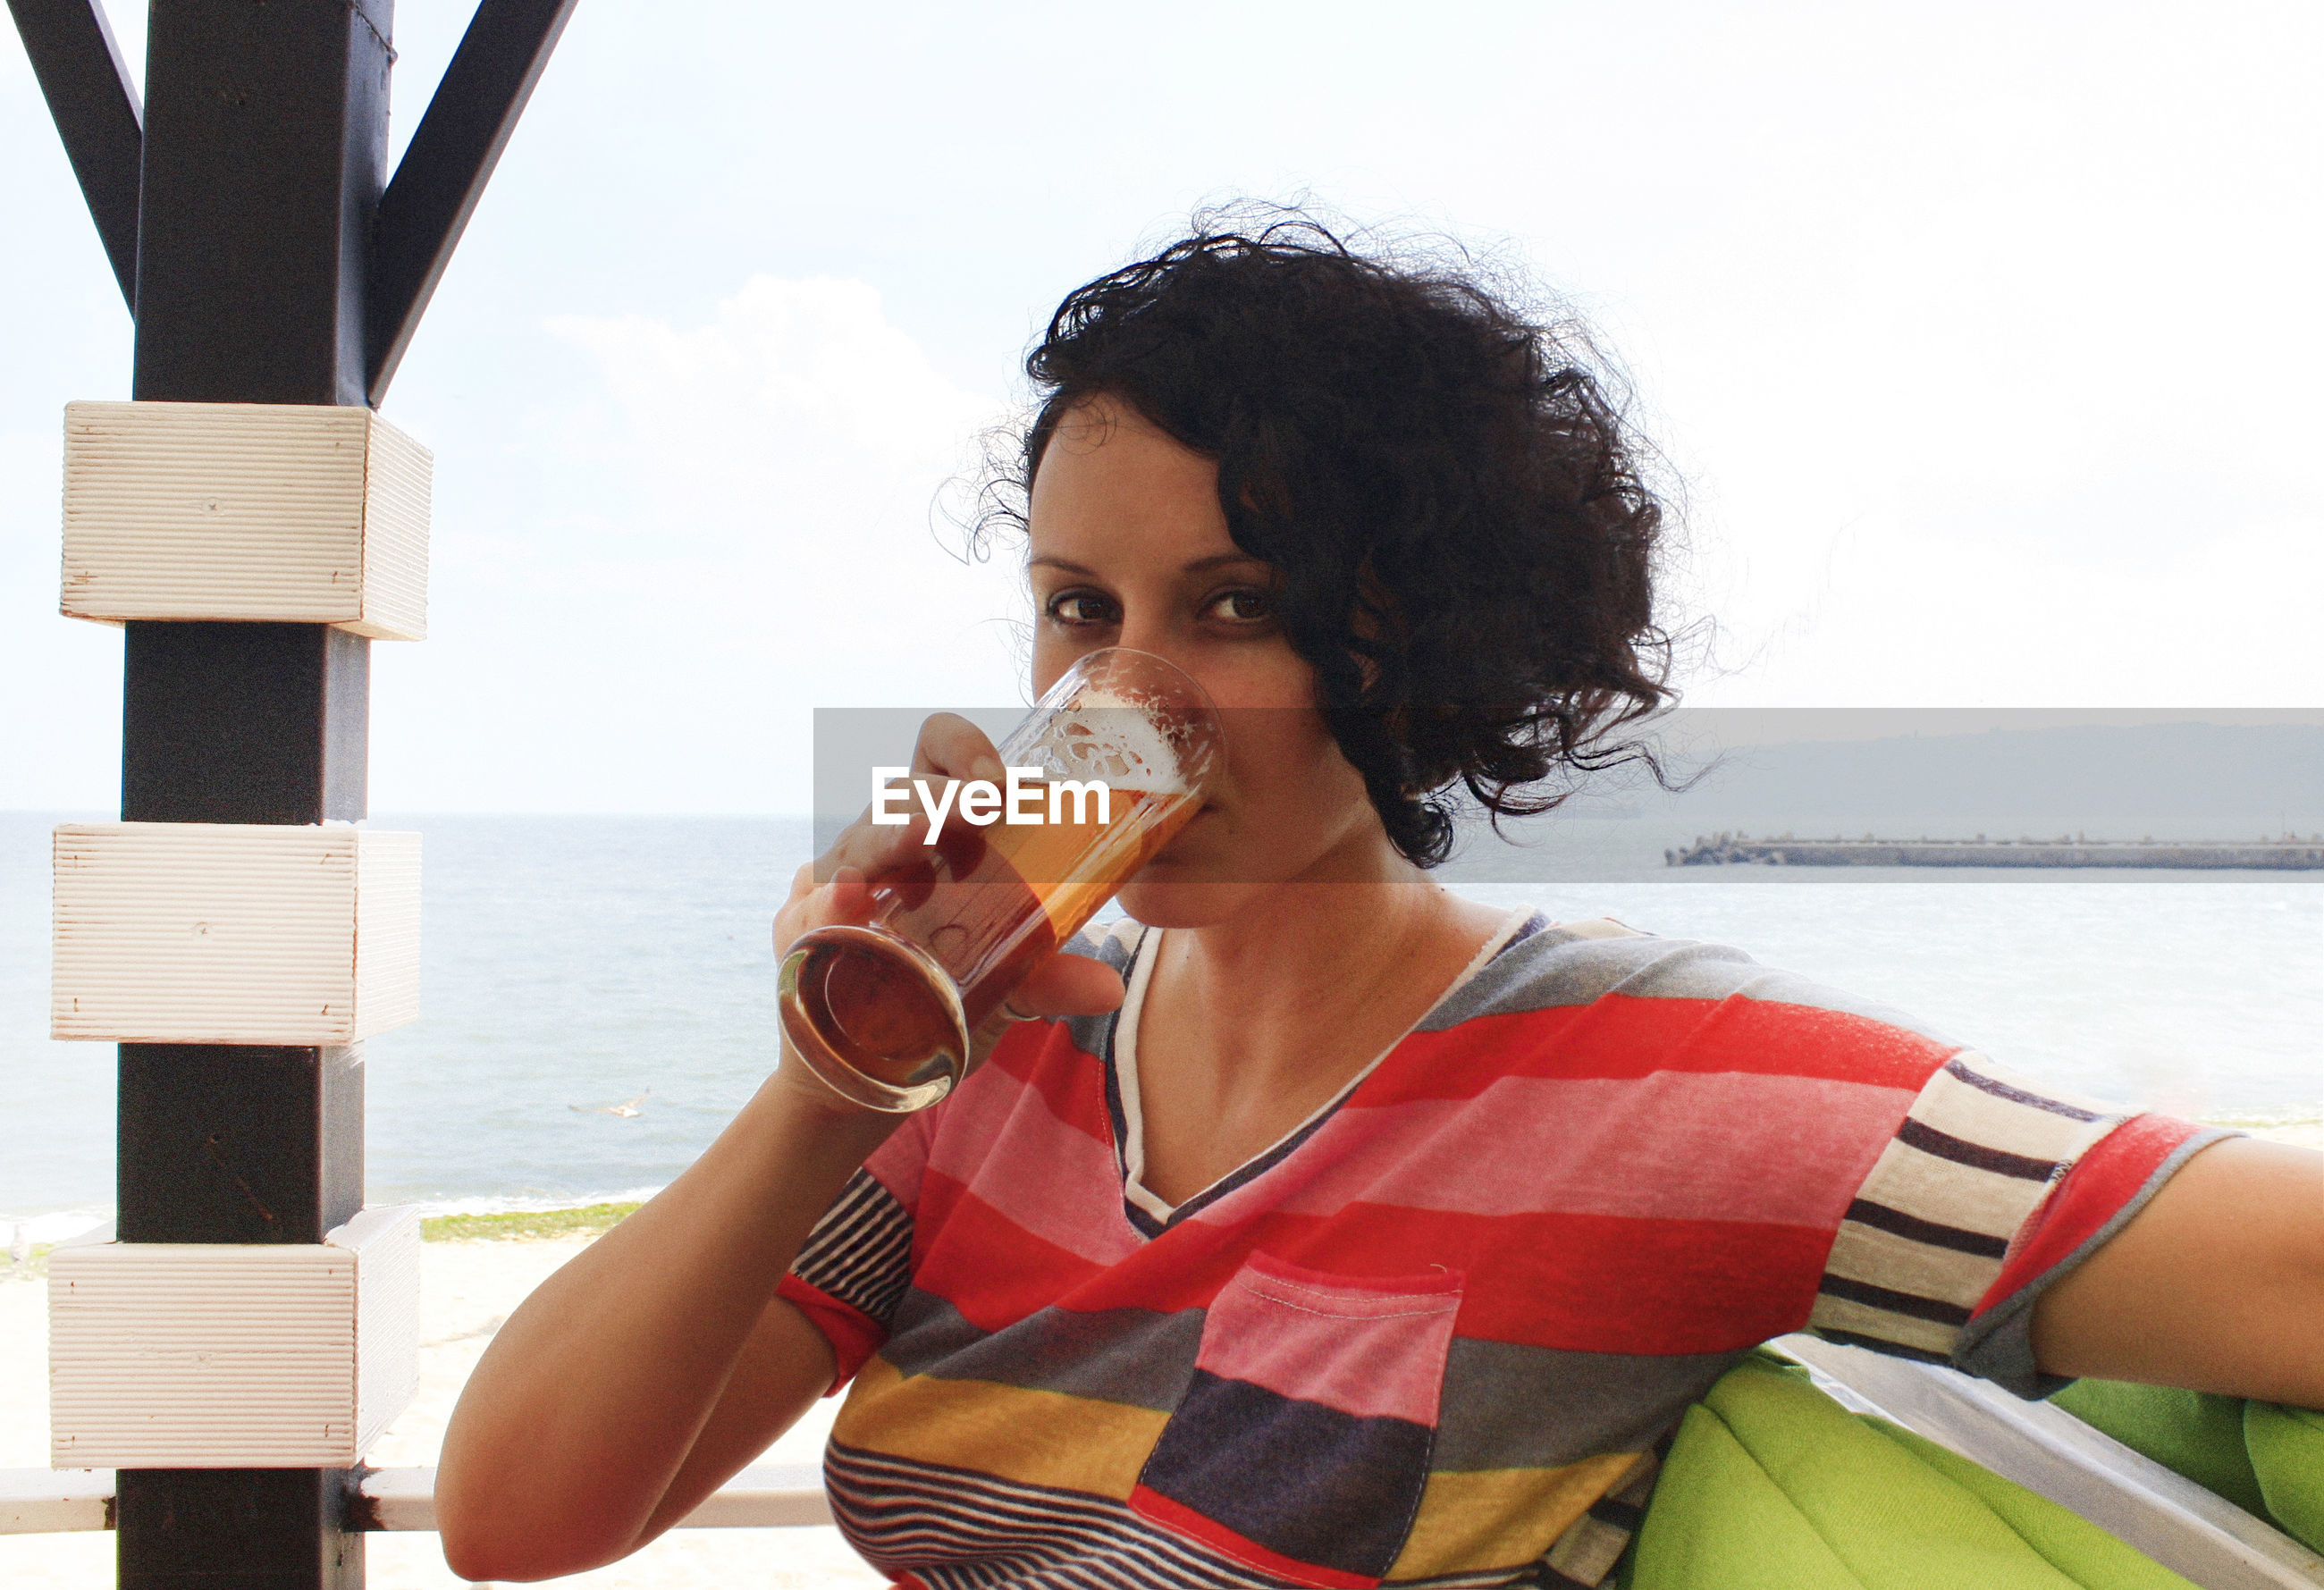 Portrait of woman drinking alcohol in glass against sea and sky